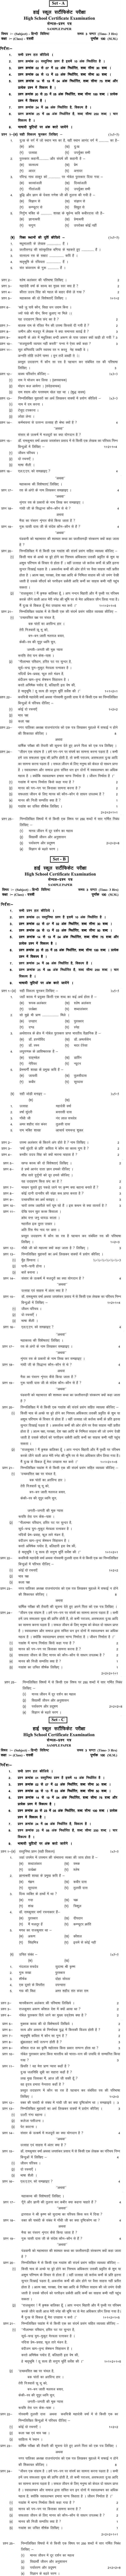 Chattisgarh Board Class 10 Hindi Special Sample Paper